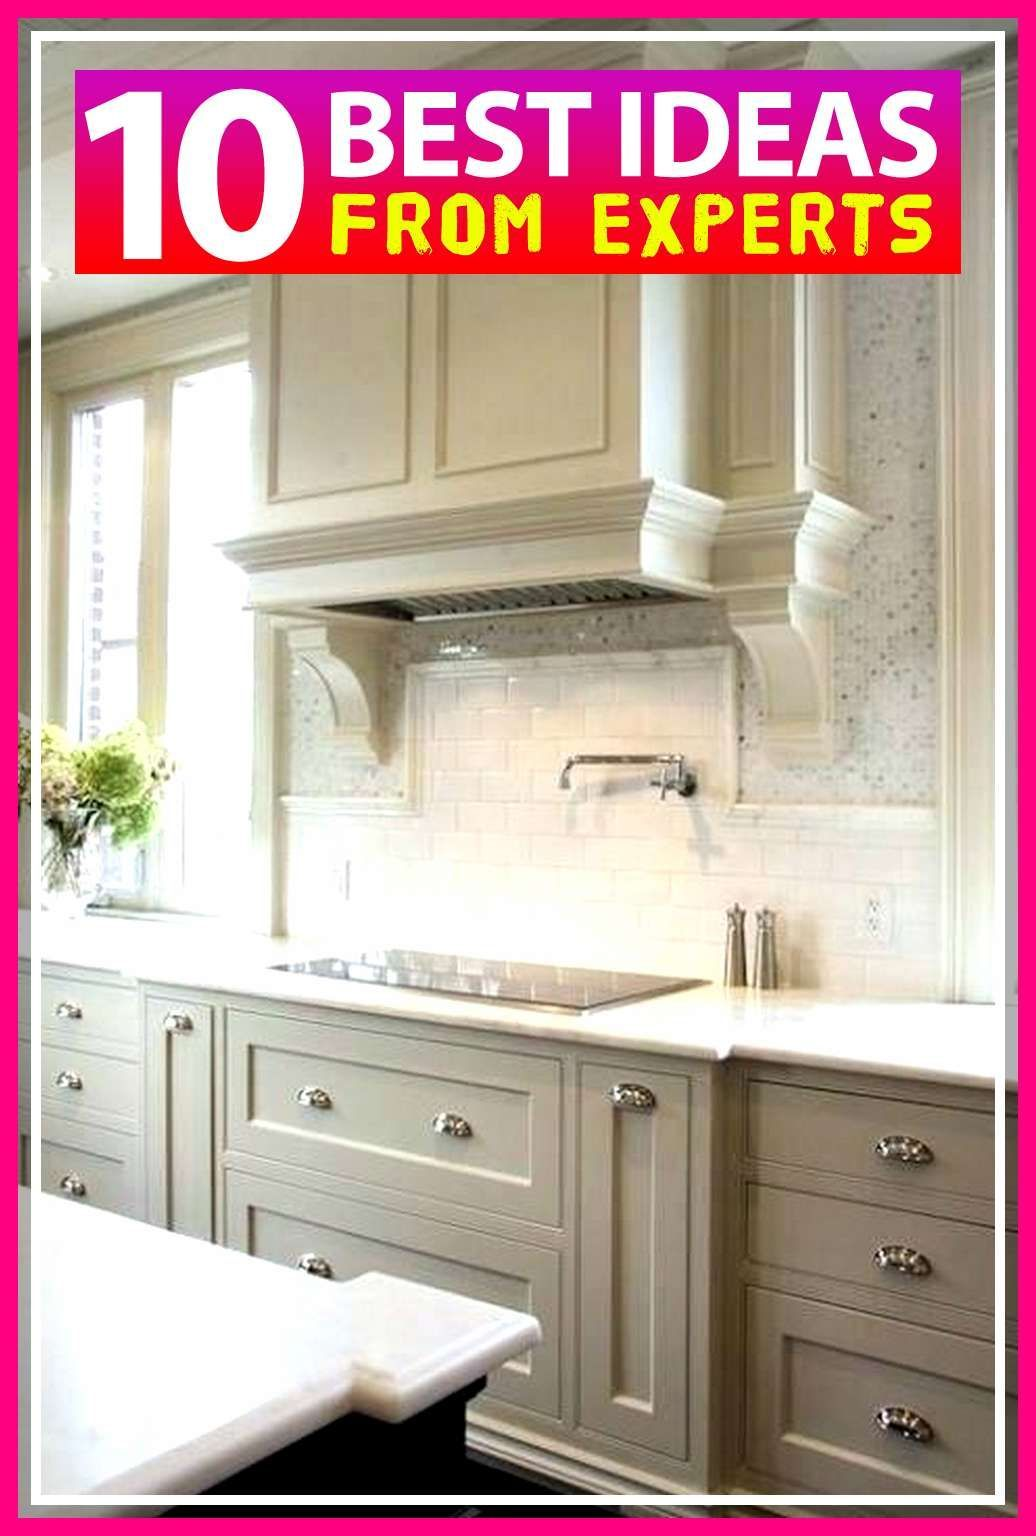 10 amazing paint kitchen cabinets before and after ideas design kitchenideasbeforeandafter 2020 on kitchen cabinets painted before and after id=30771